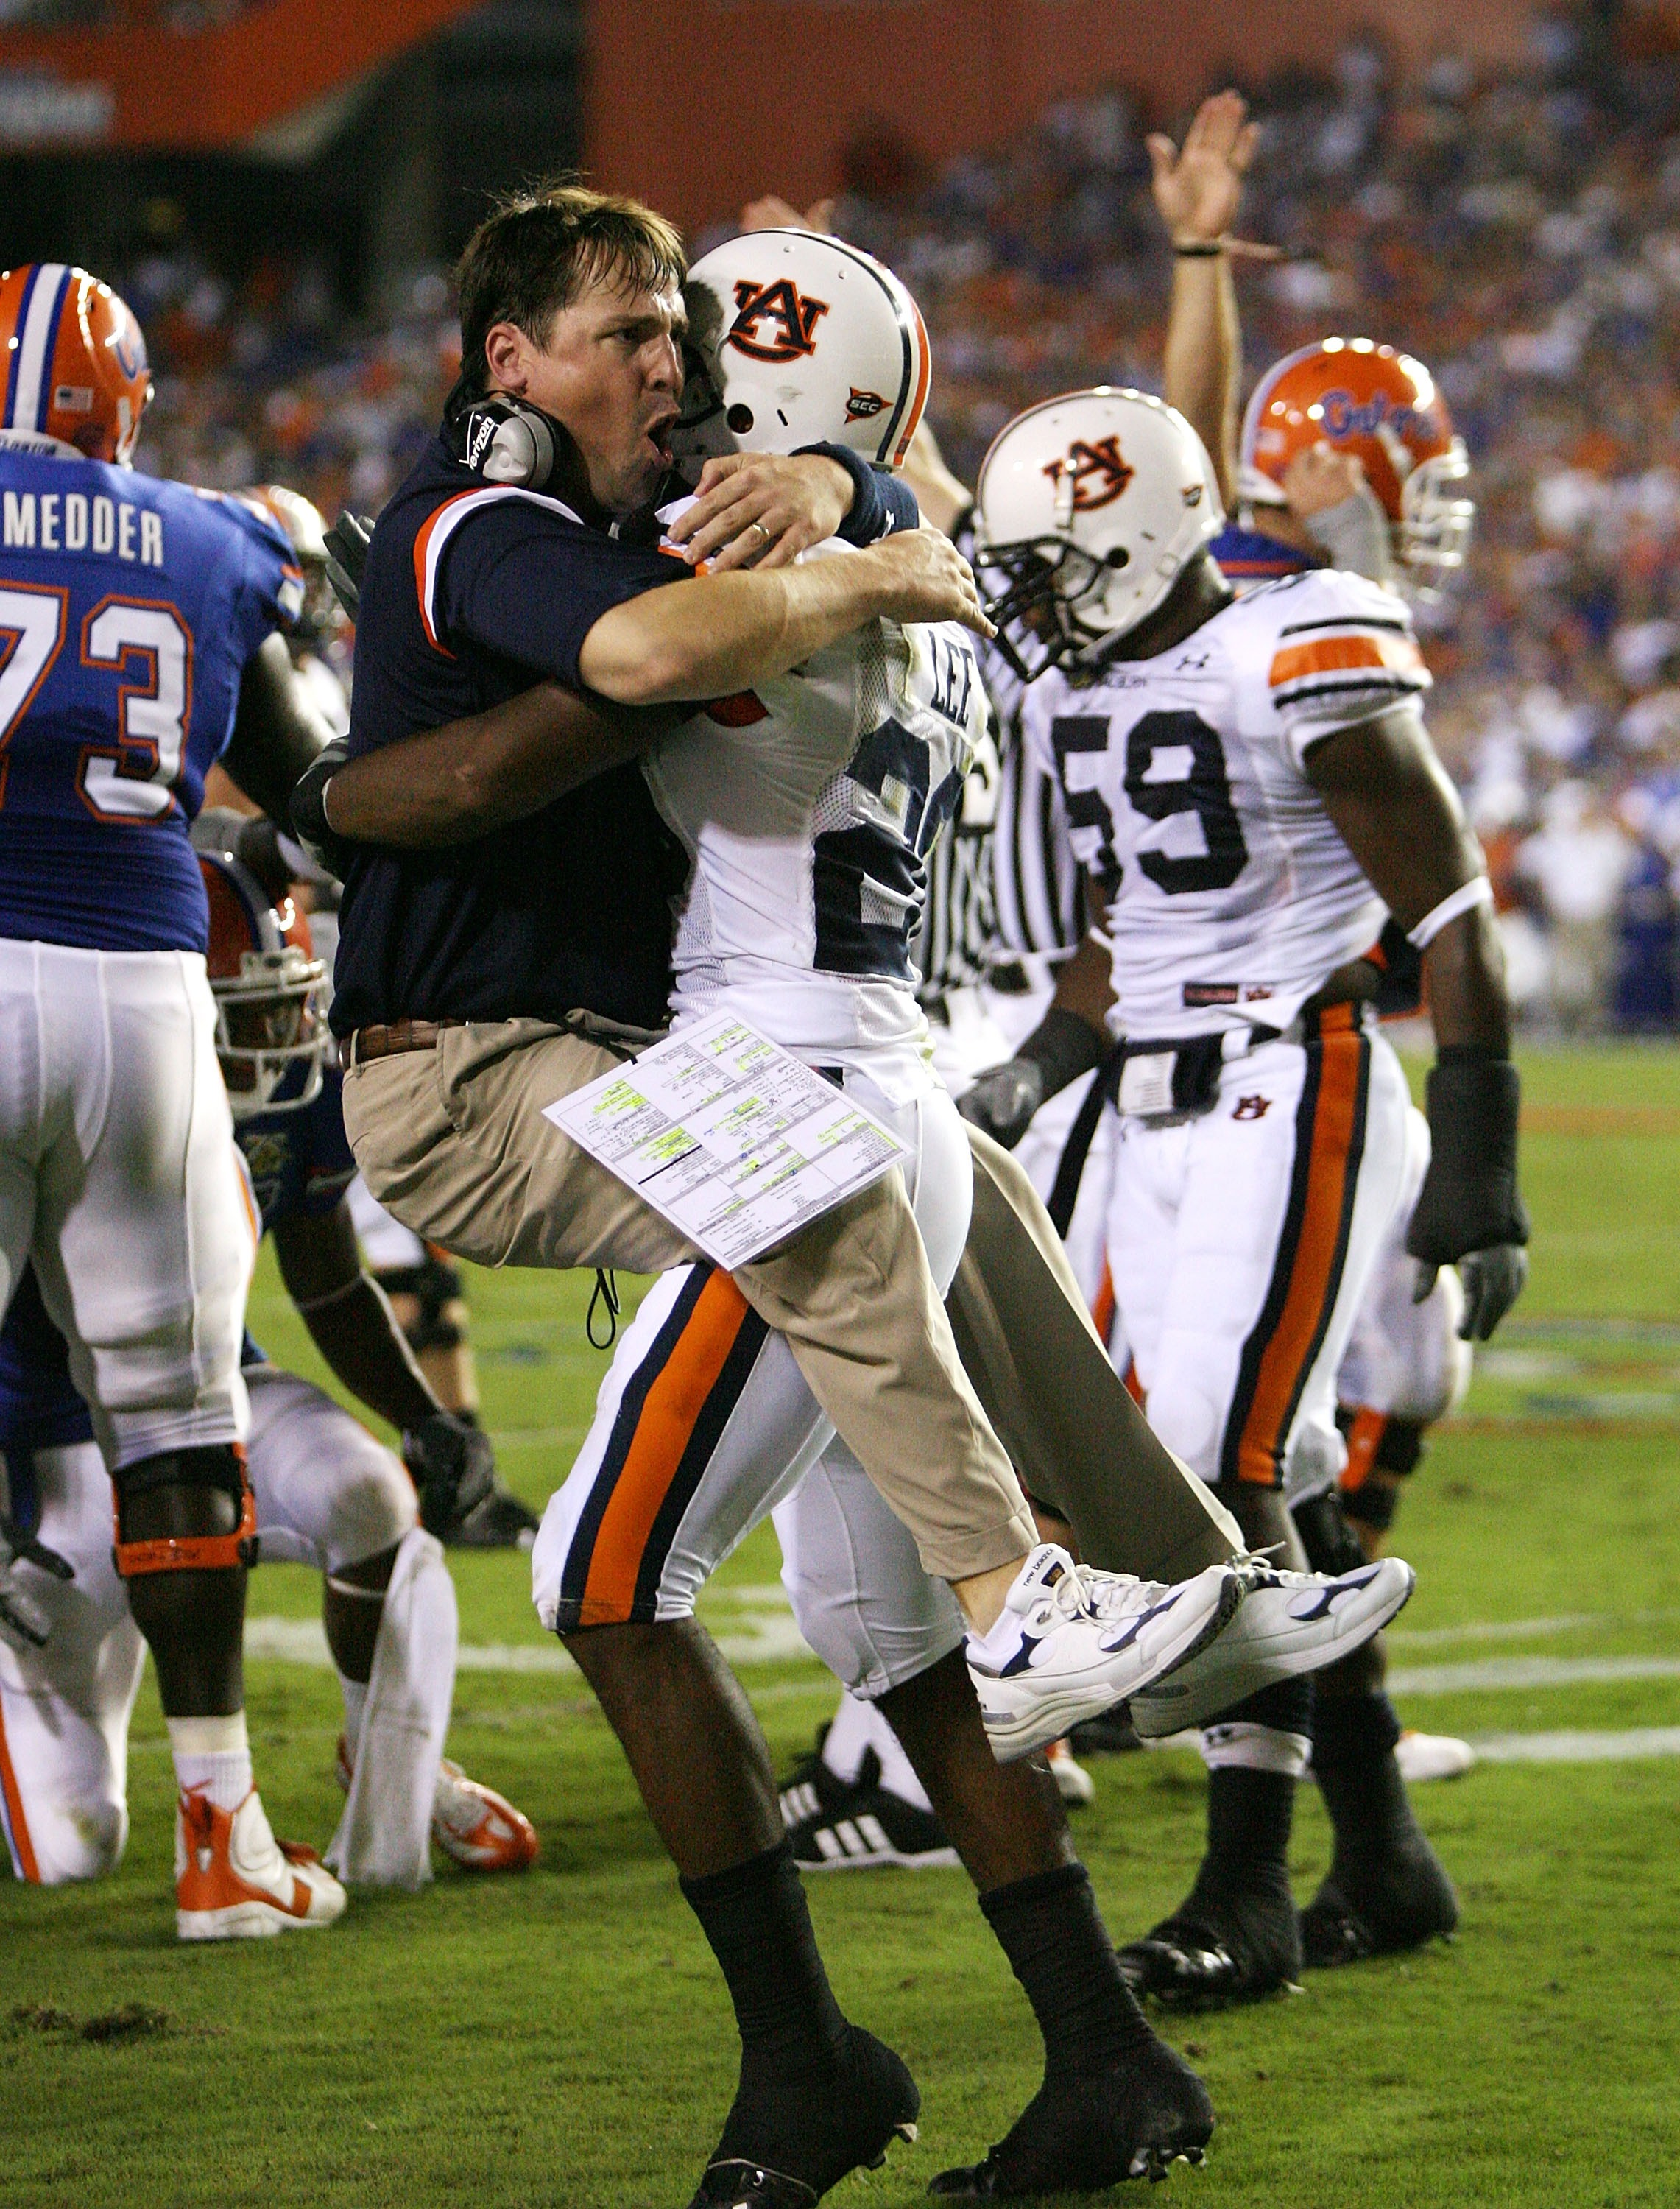 GAINESVILLE, FL - SEPTEMBER 29:  Defensive coordinator Will Muschamp of the Auburn Tigers jumps into the arms of defensive back Patrick Lee #20 after Lee helped cause a fumble late in the first half against the Florida Gators at Ben Hill Griffin Stadium S